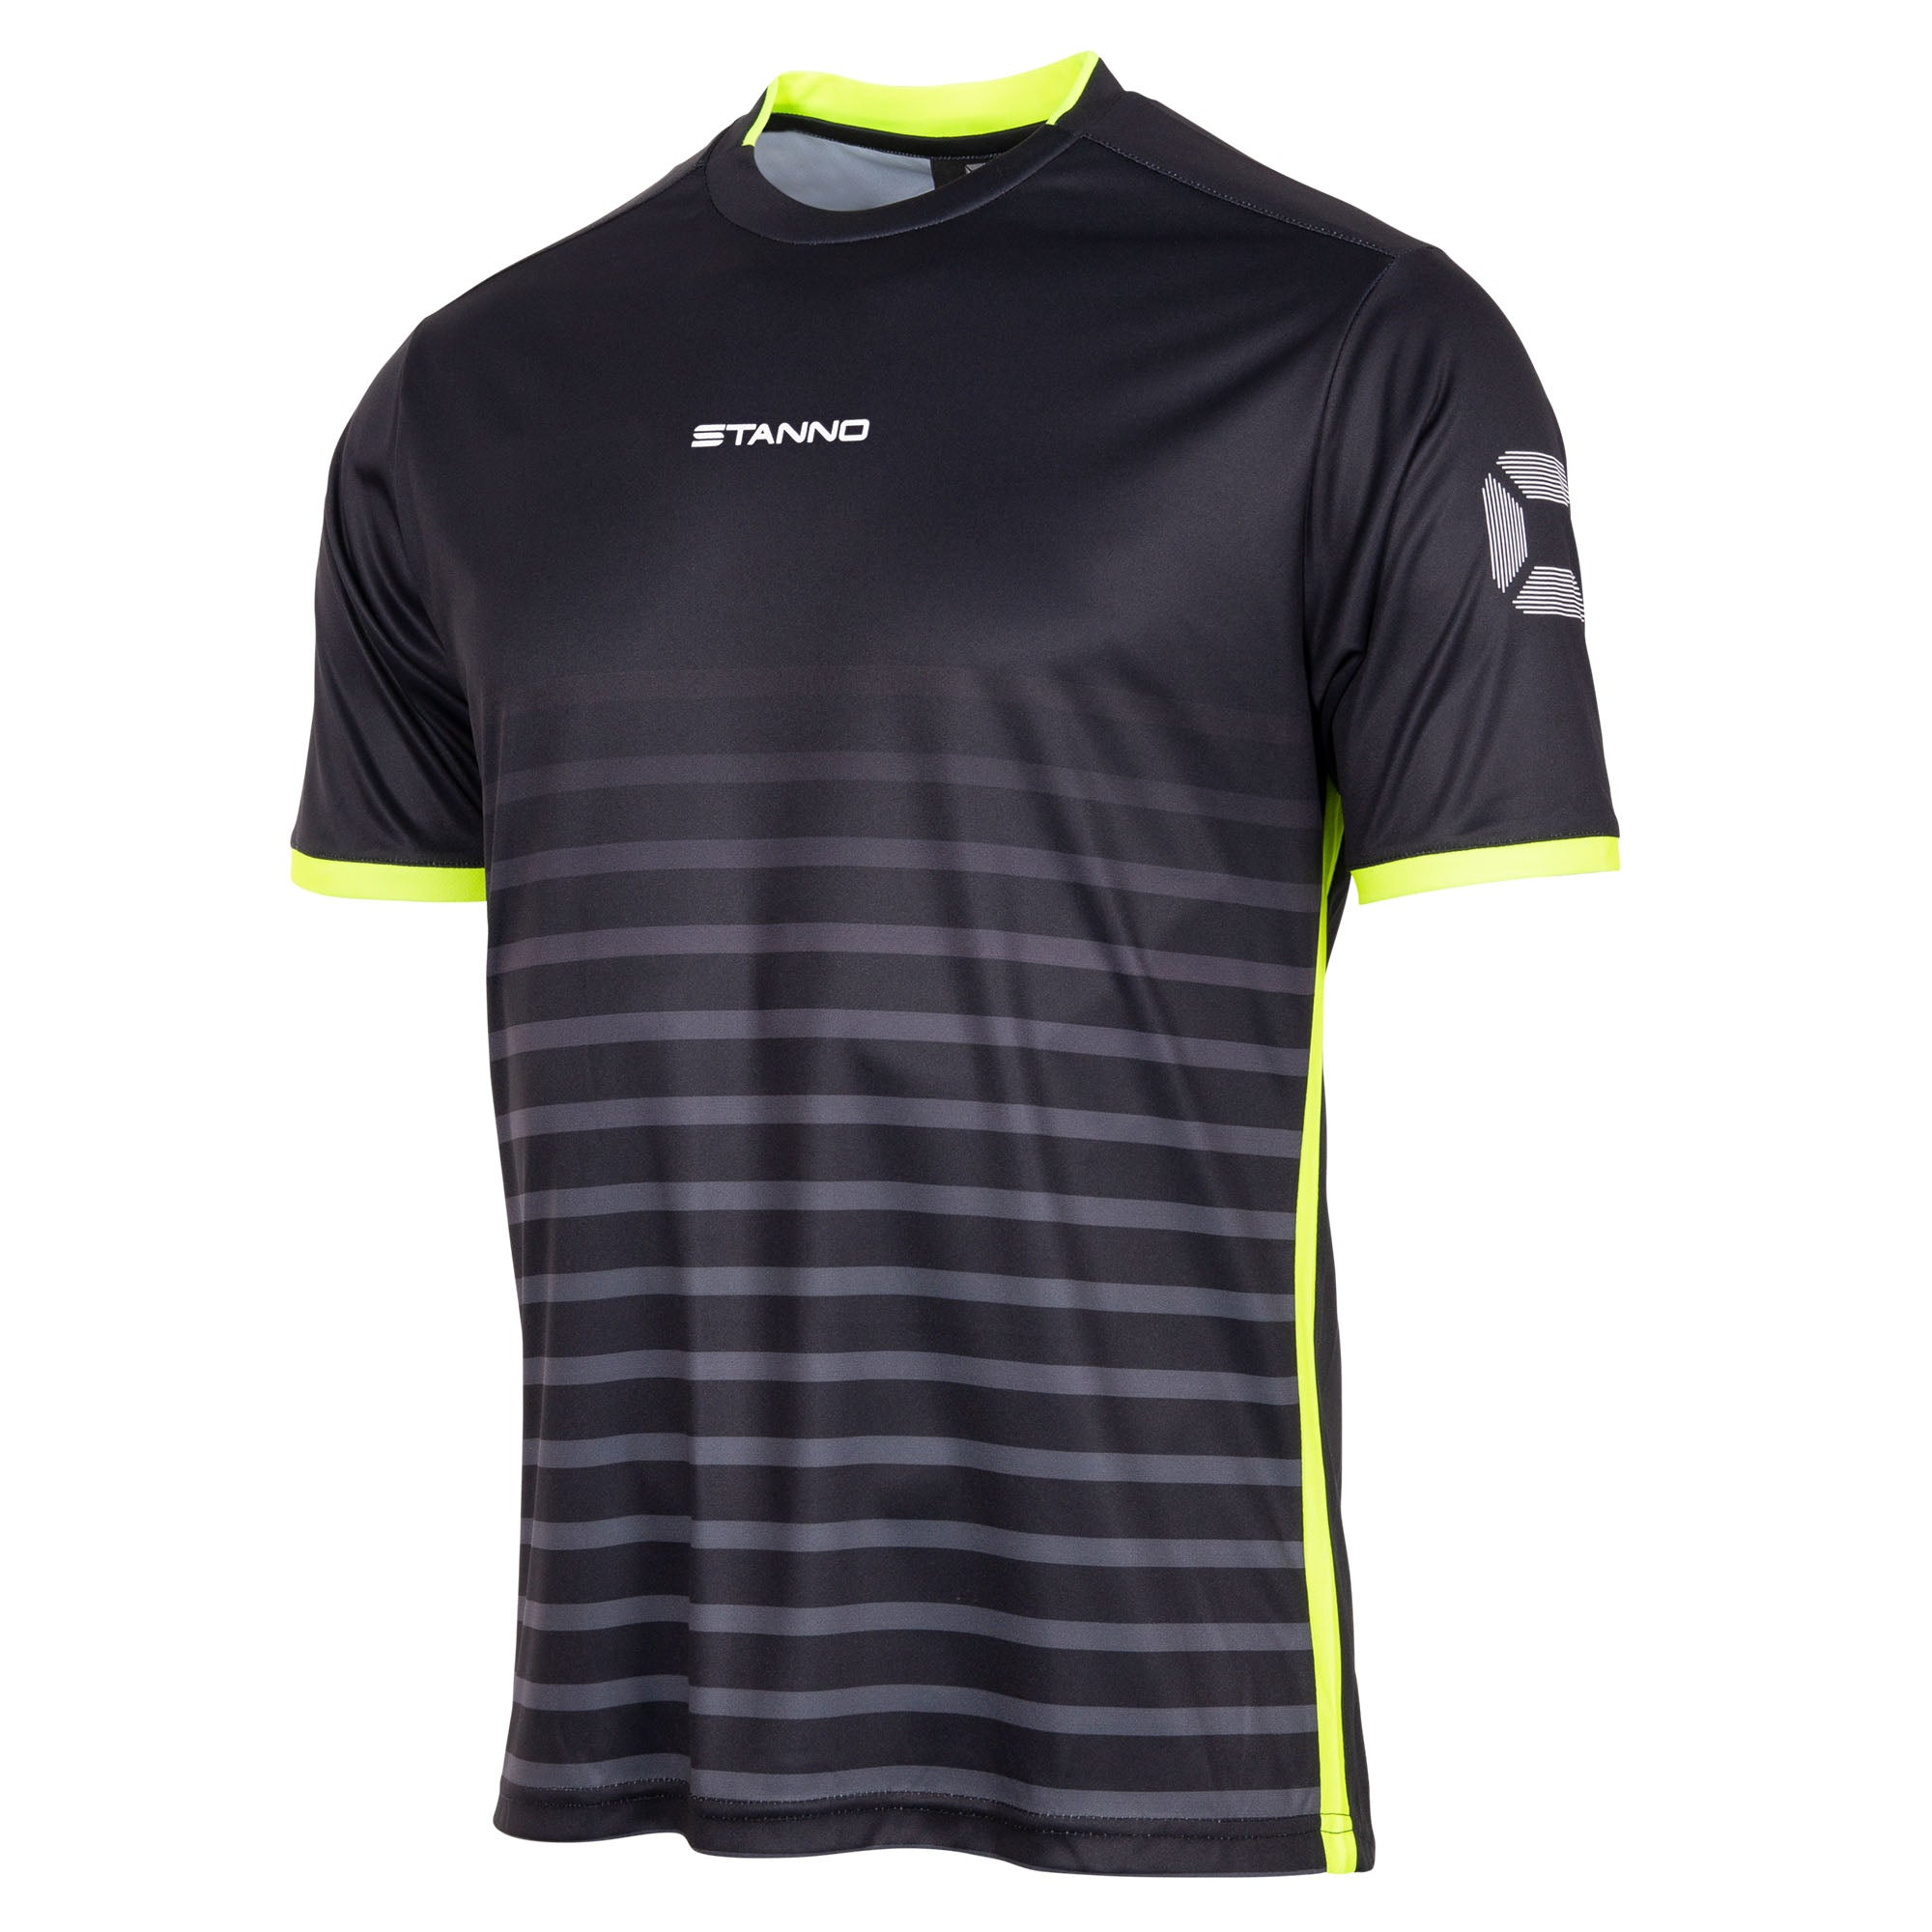 Stanno Fusion limited edition short sleeved shirt in black with neon yellow hooped graphic on the chest. Central Stanno text logo on the chest and Stadium logo on the sleeve. Contrast neon yellow panel on the sides and cuff.